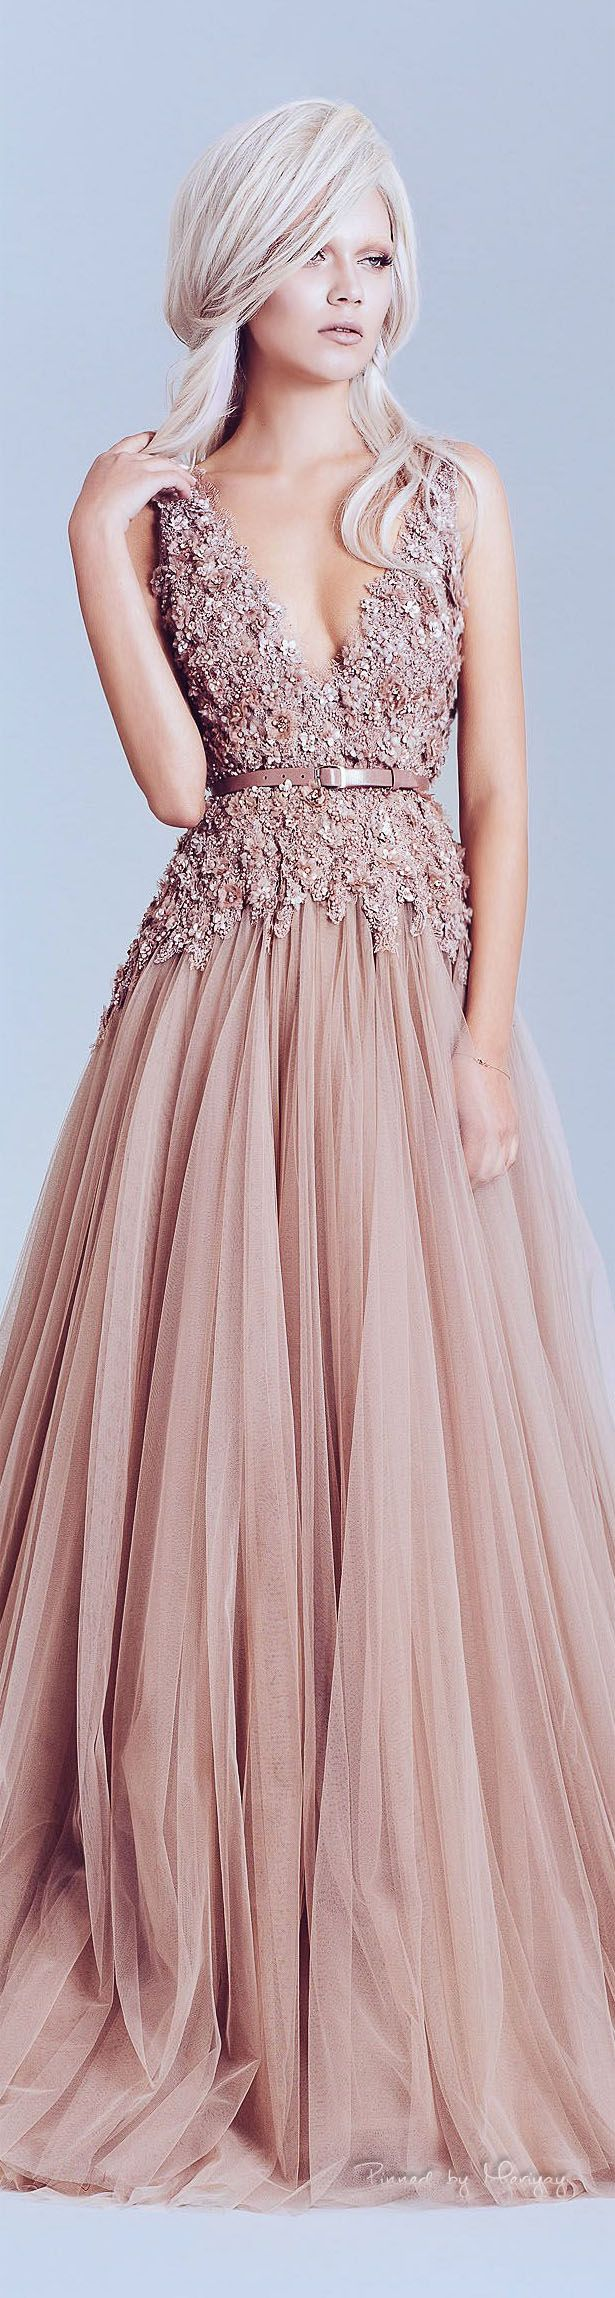 Alfazairy Spring-summer 2015. #gorgeous #dress bridesmaid dresses, sequin bridesmaid dresses